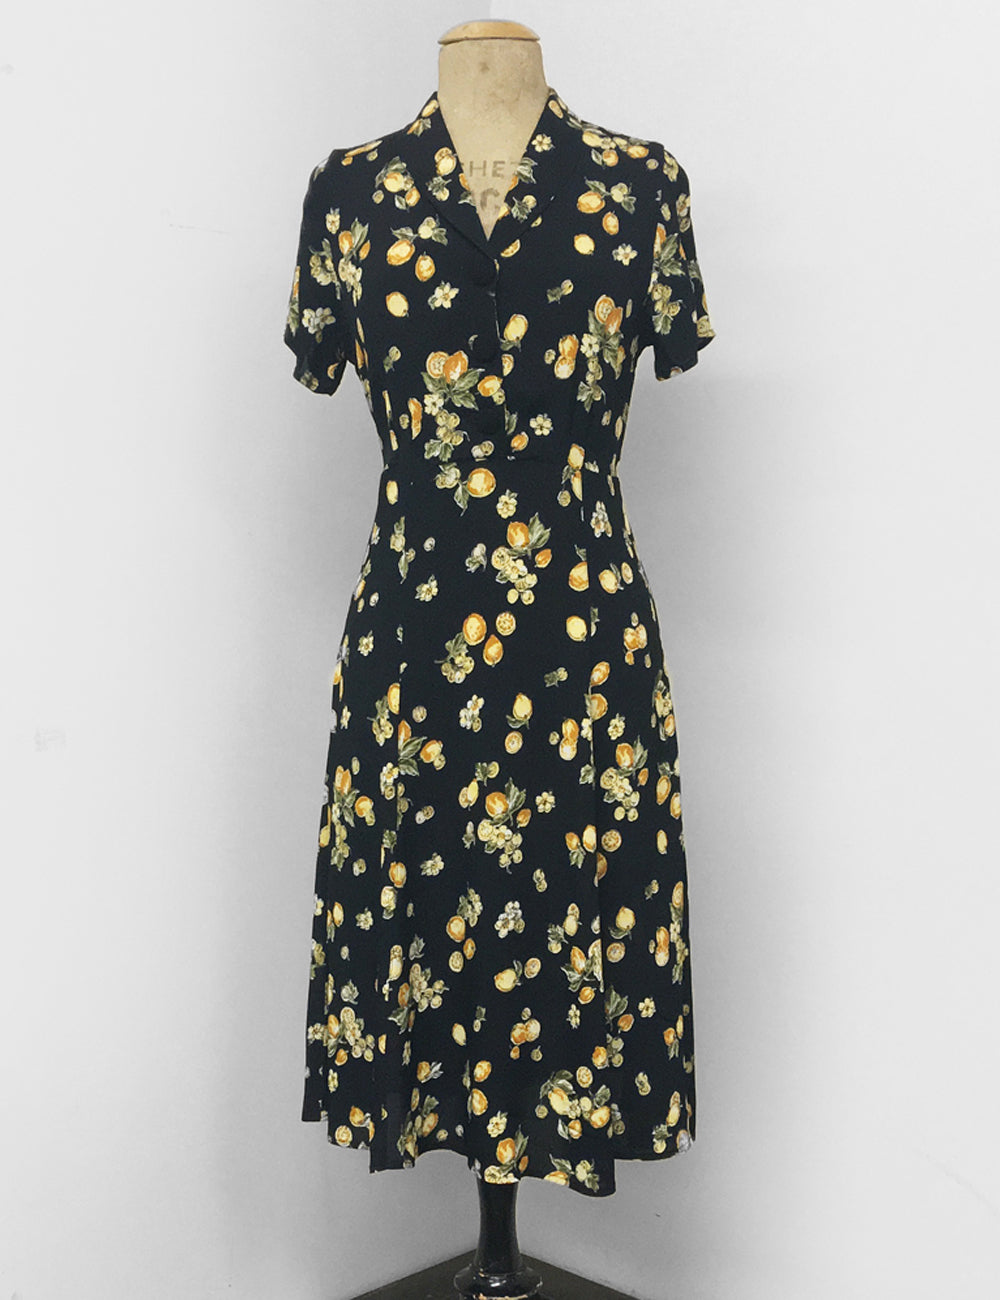 Black Lemon Print Short Sleeve Vintage Day Dress